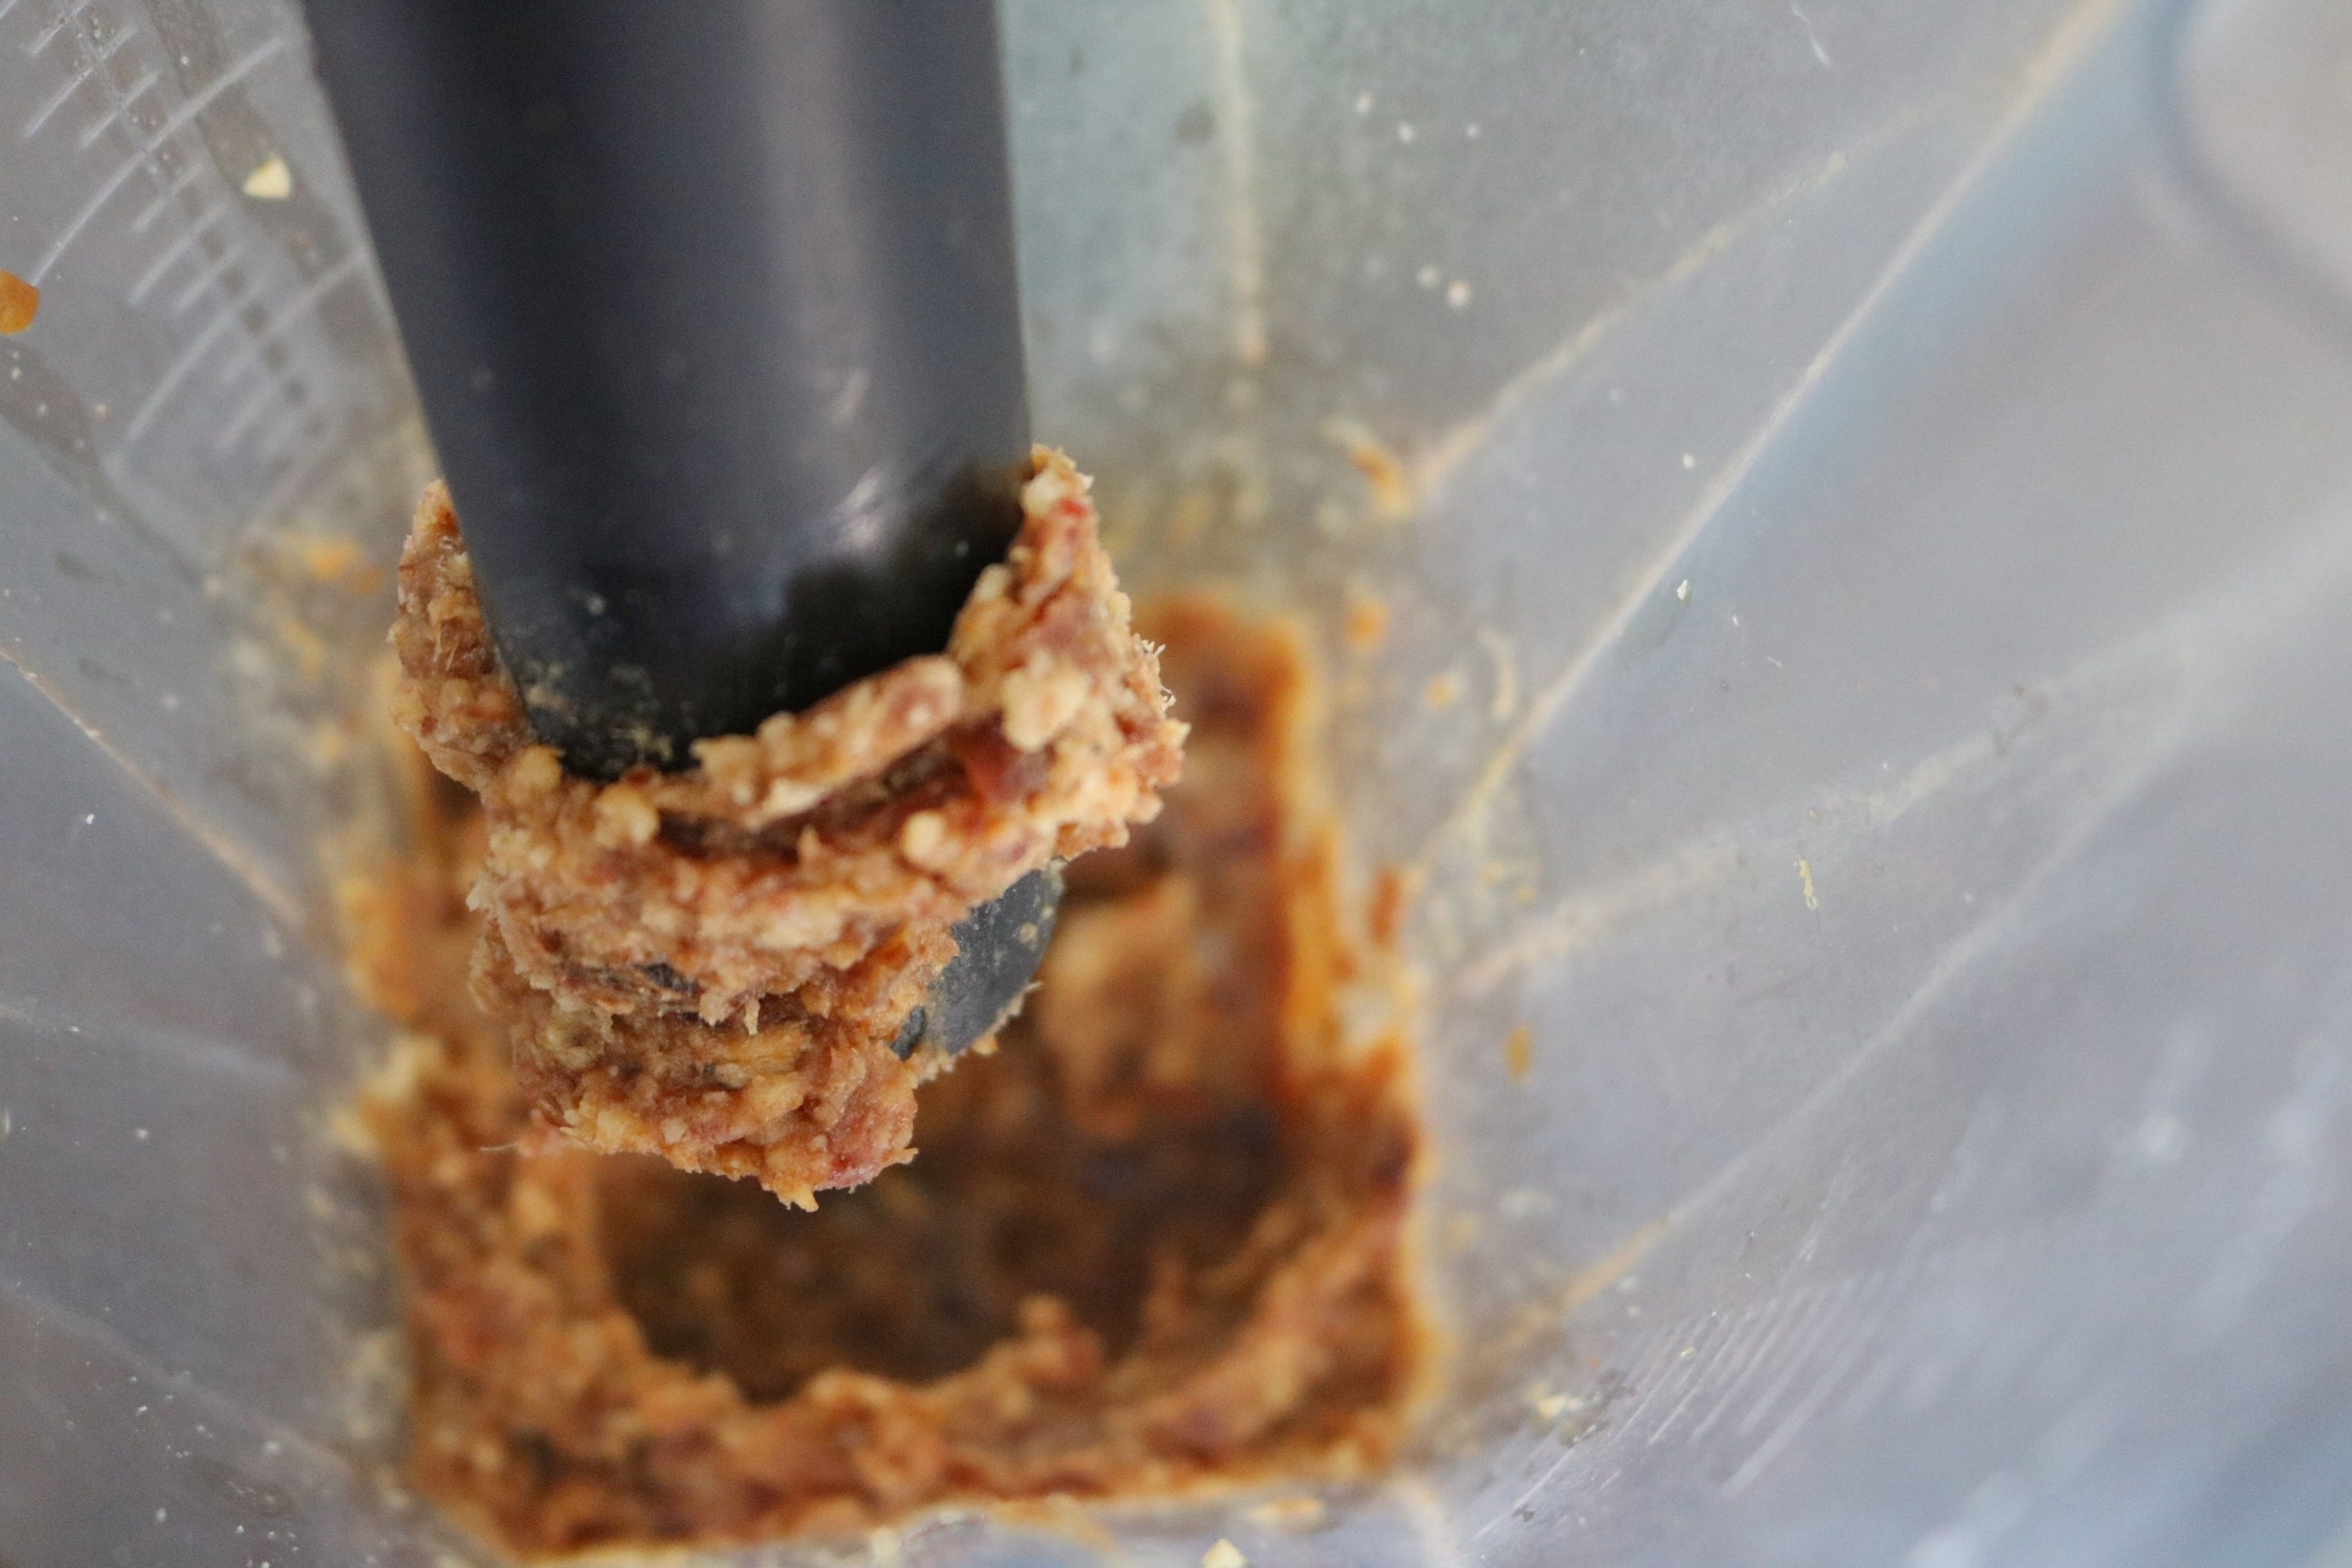 Dates and walnuts pulsed into a paste in a blender